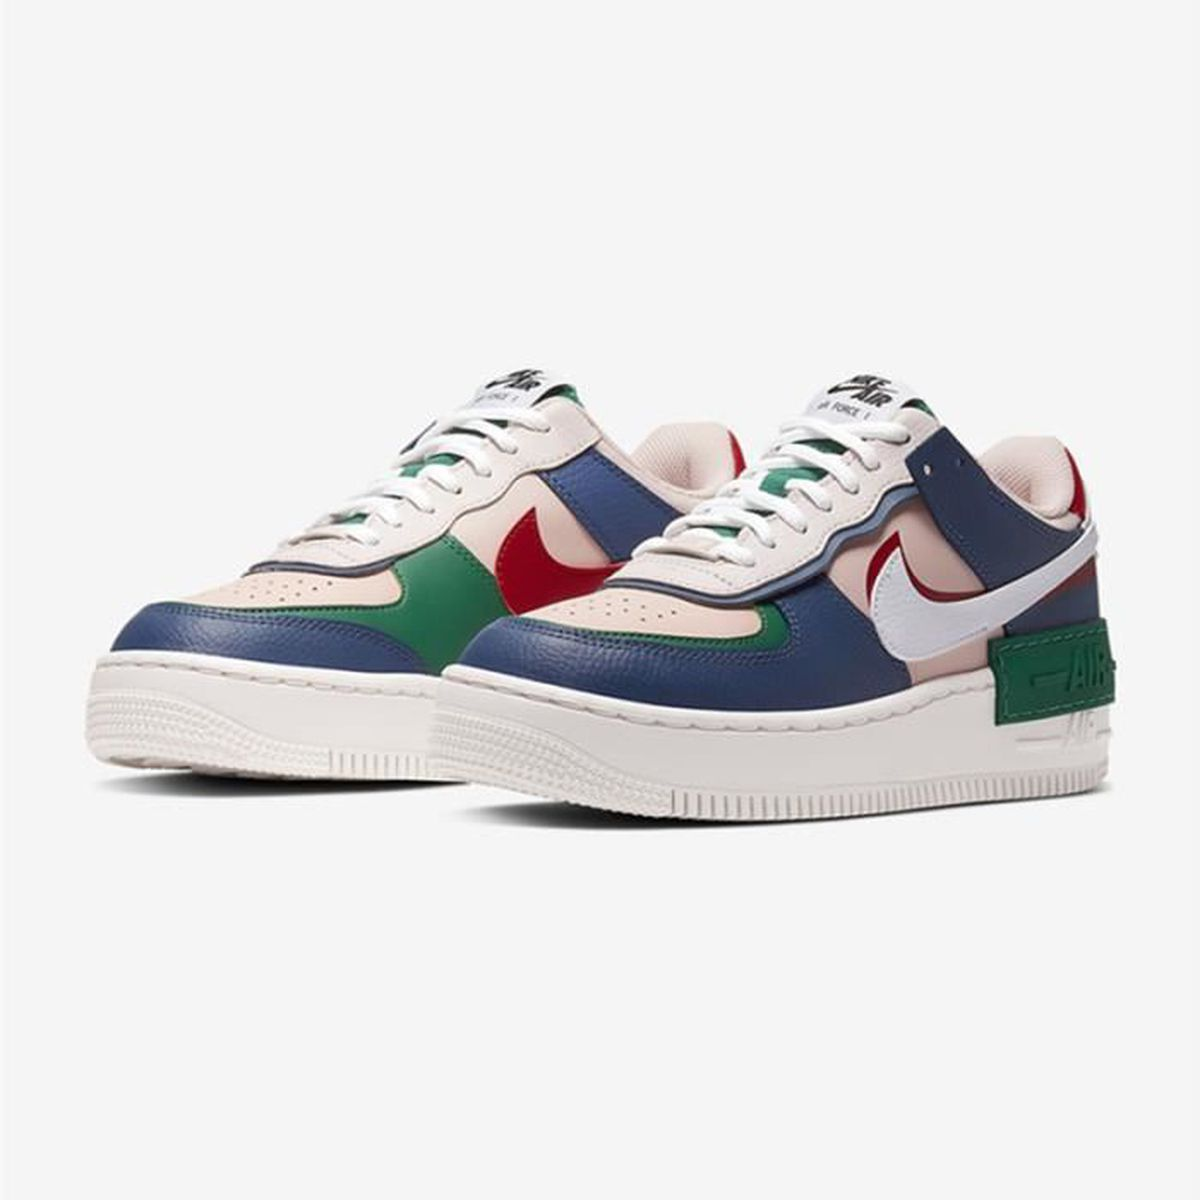 air force one jester femme pas cher